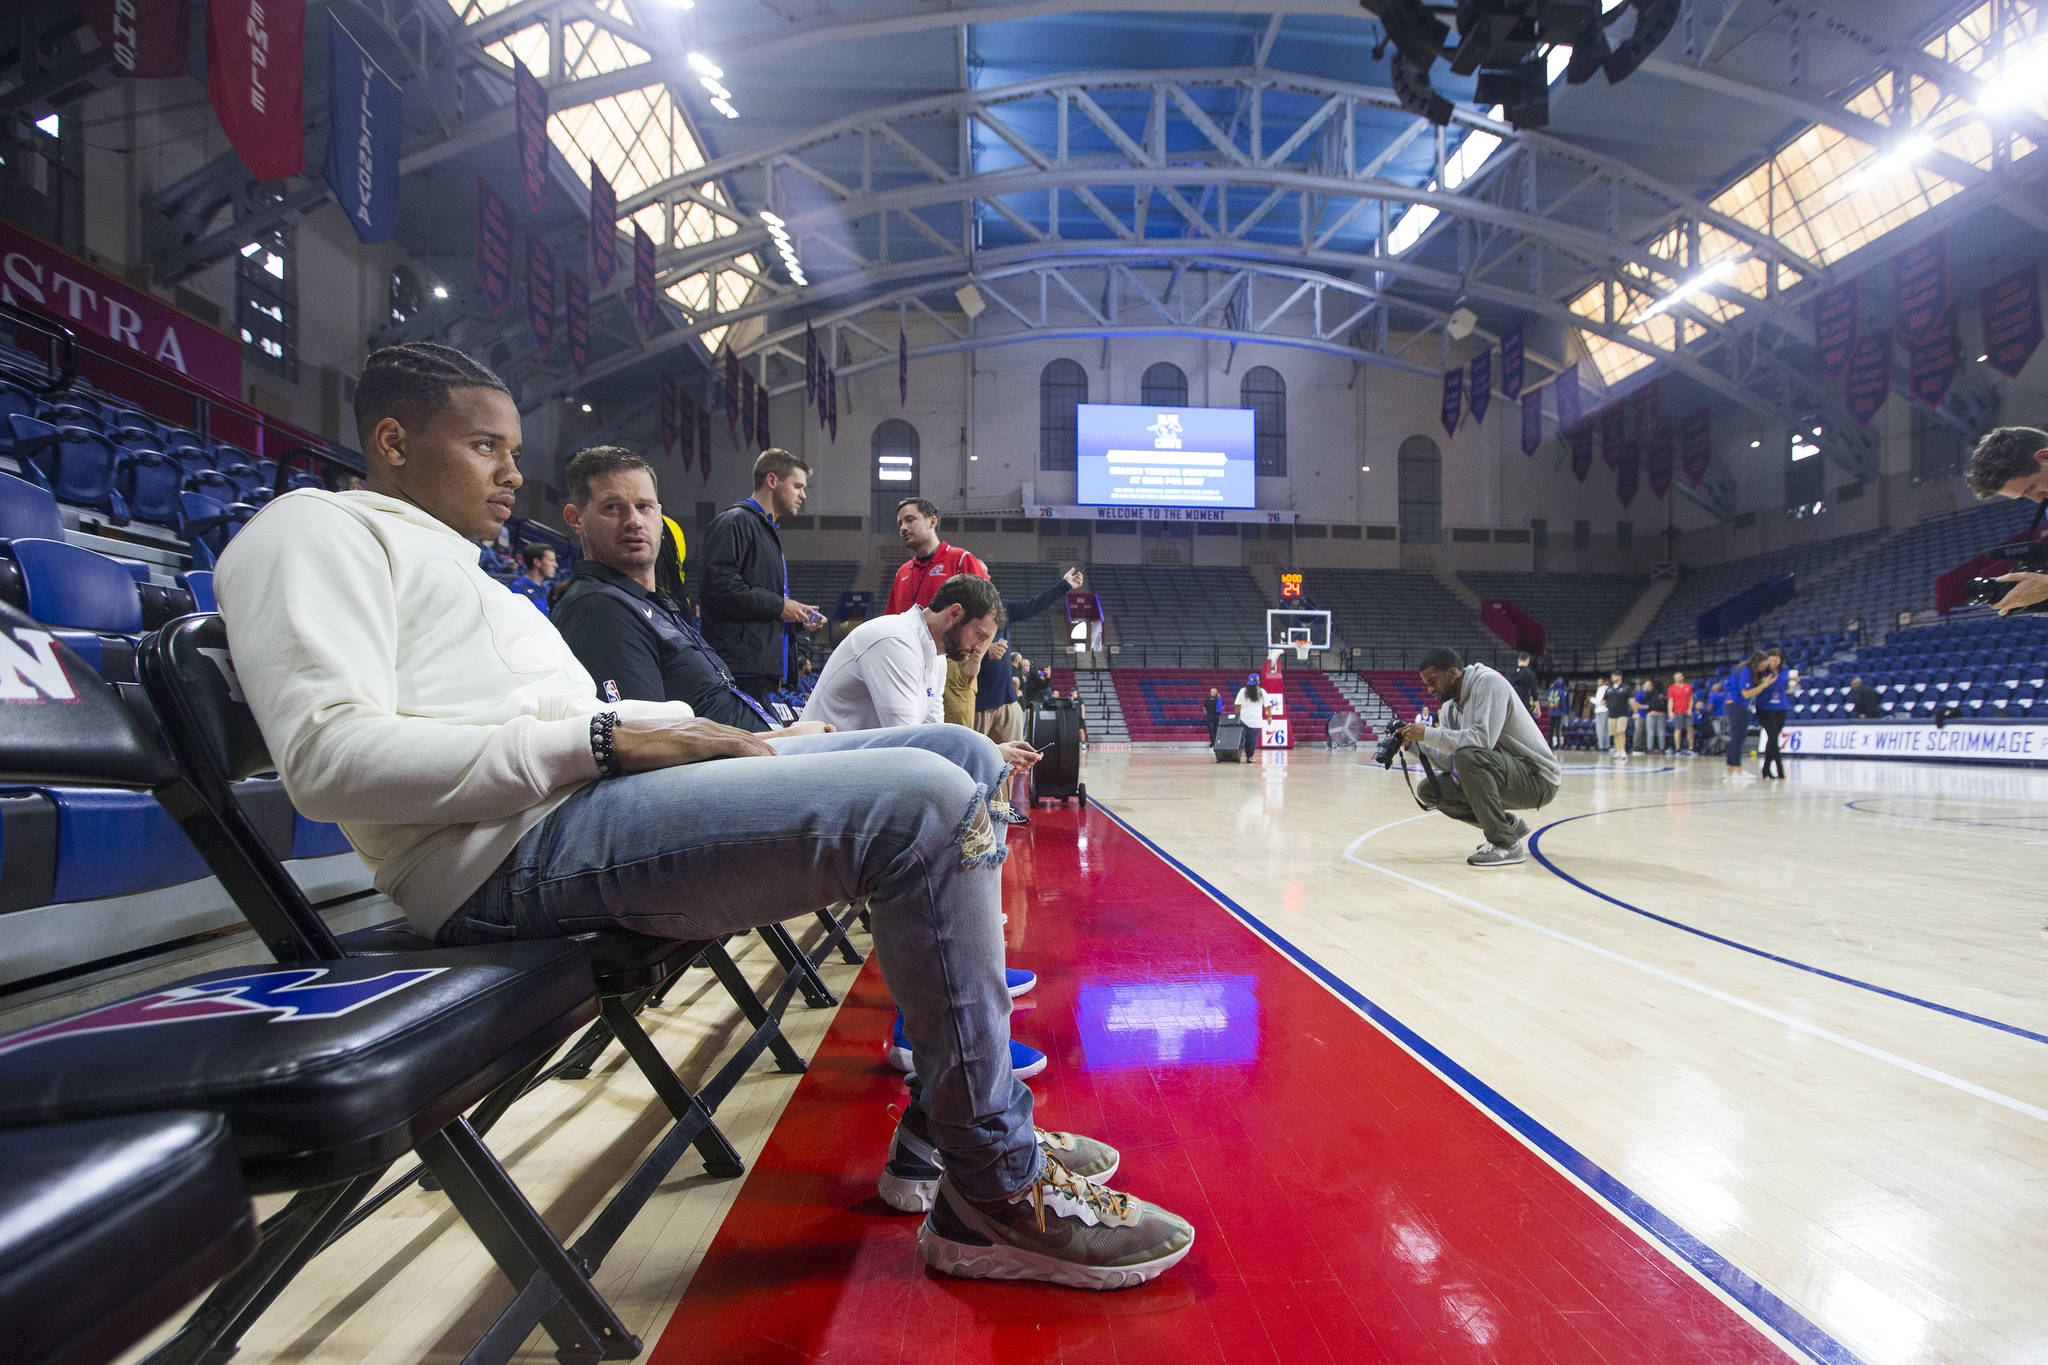 The Sixers Blue x White Scrimmage at the Palestra which is open to the public was cancelled due to a slippery court caused by condensation on Sept. 25, 2018. Markelle Fultz, left, of the Sixers sits courtside after the even was cancelled. CHARLES FOX / Staff Photographer